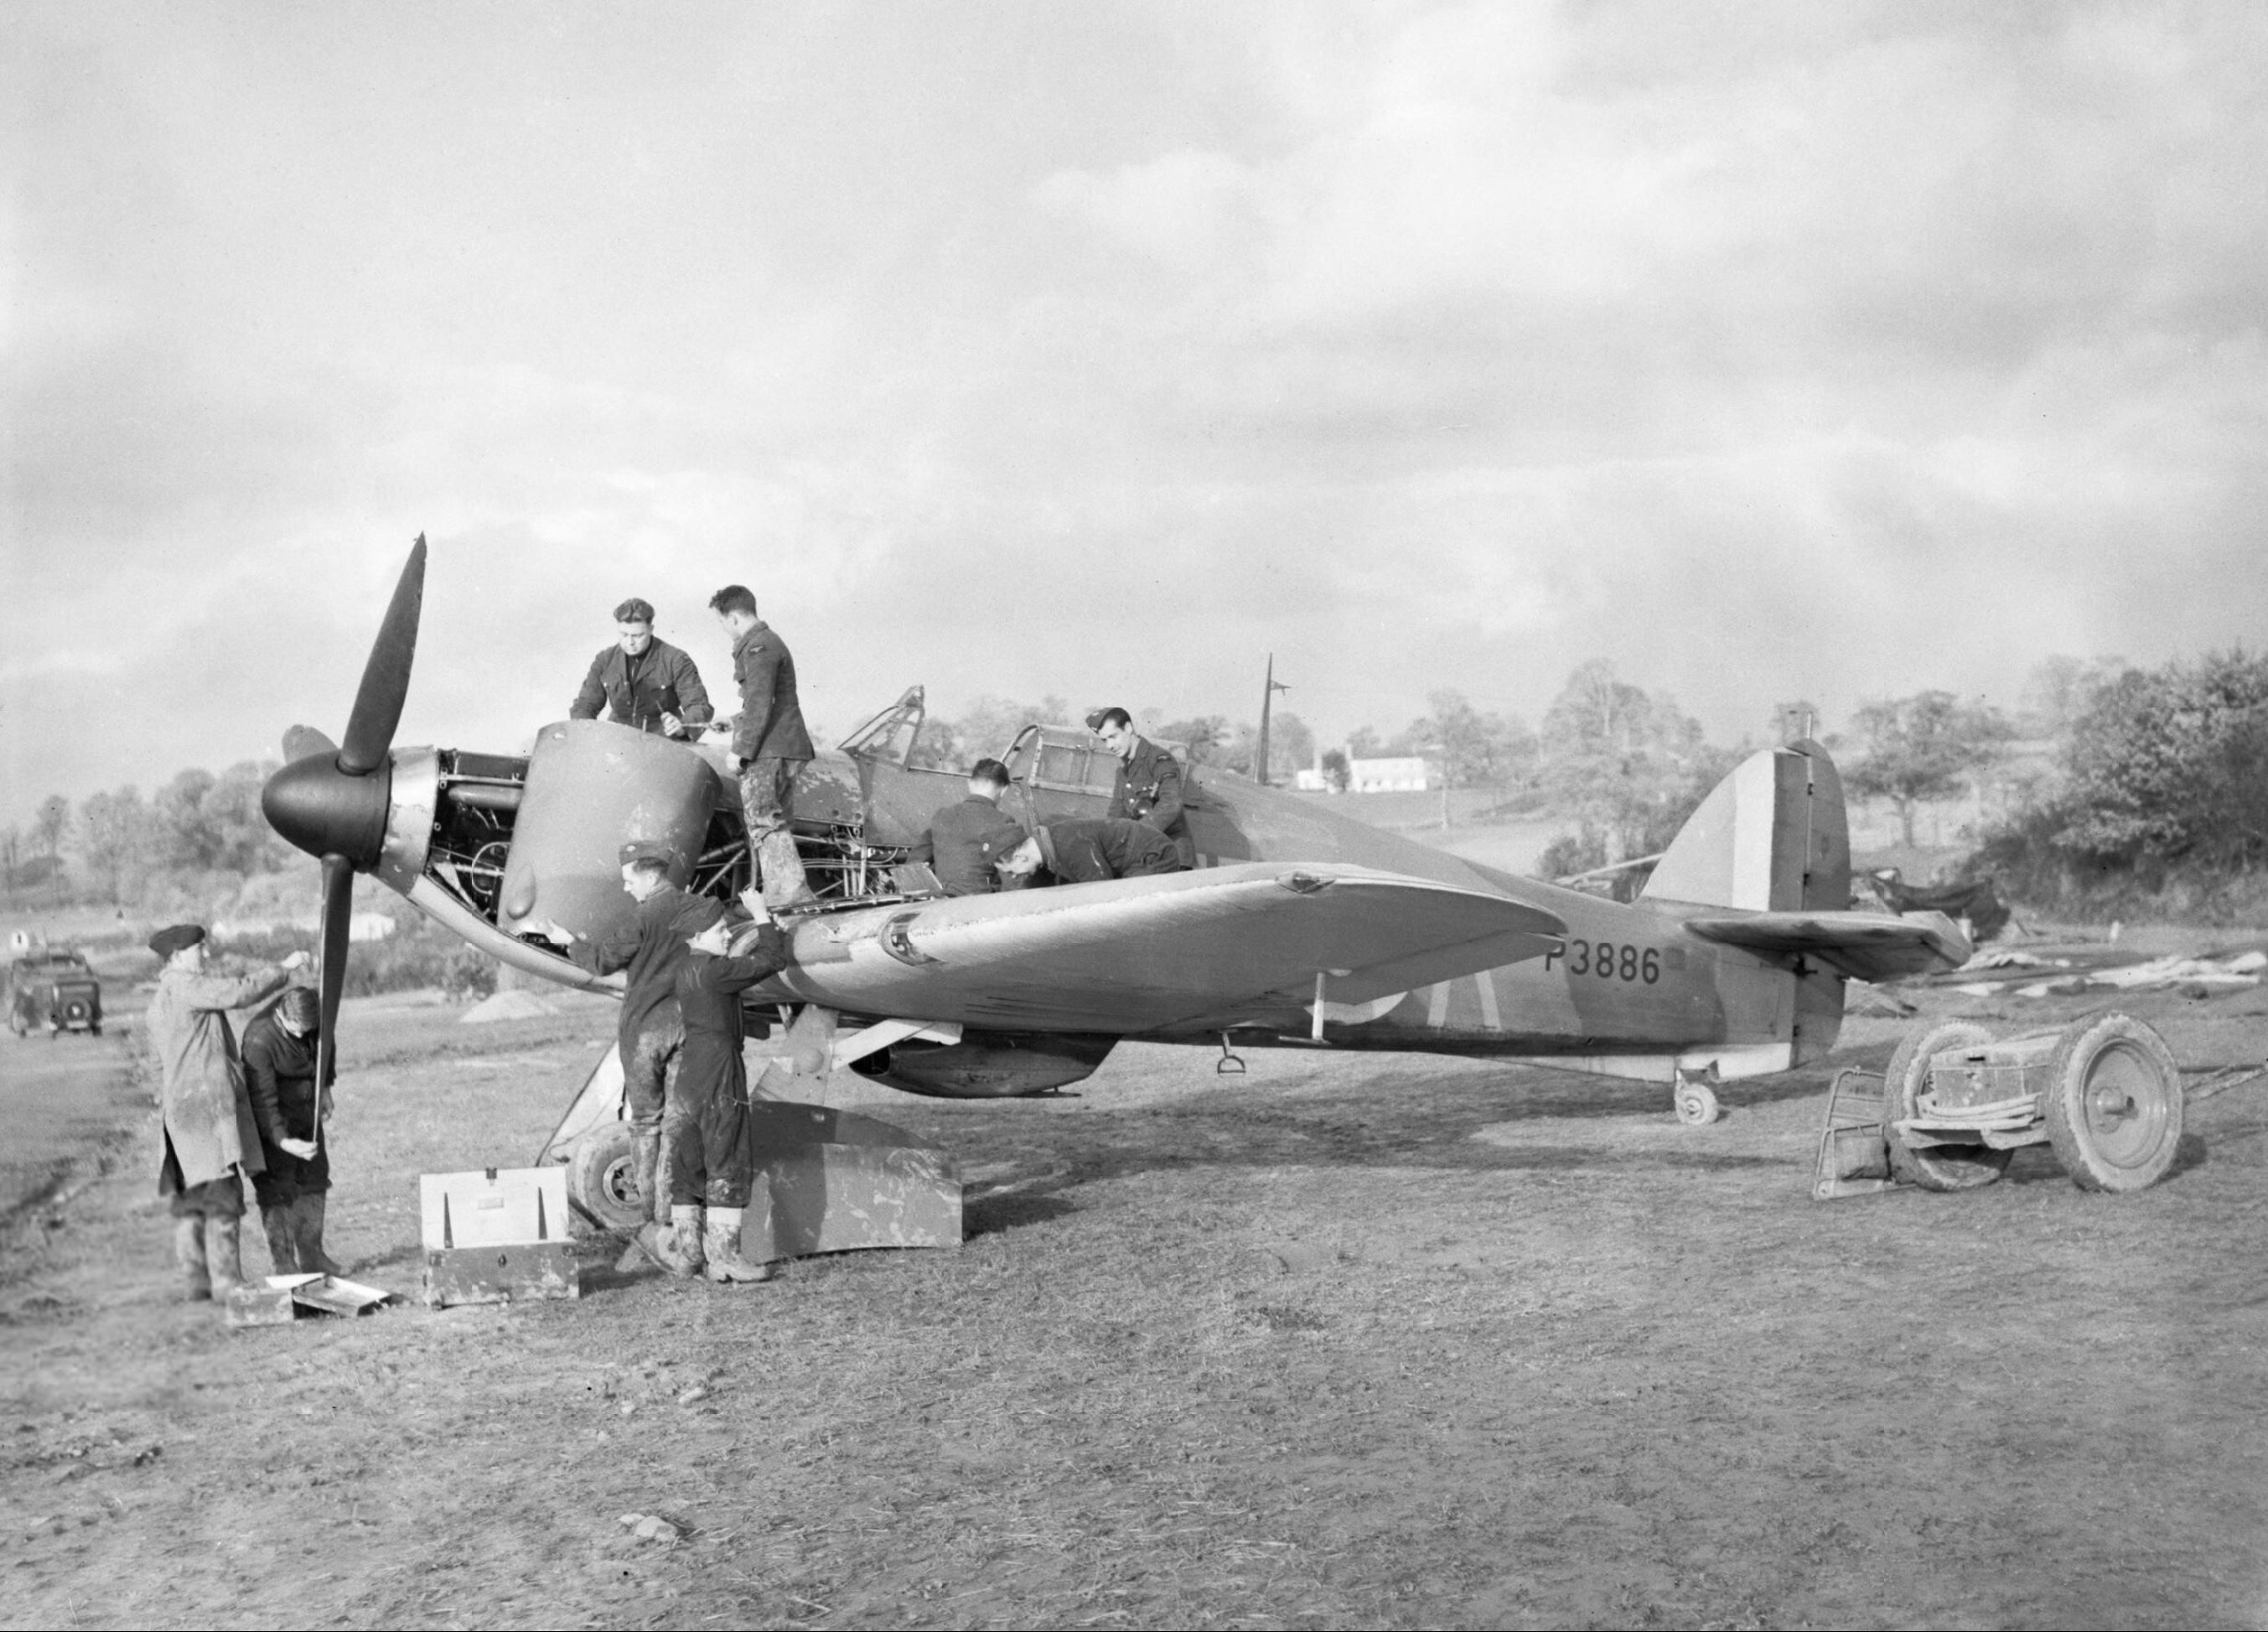 Hurricane I RAF 601Sqn UFK P3886 previously flown by HJ Riddle being repaired 1940 IWM C1638